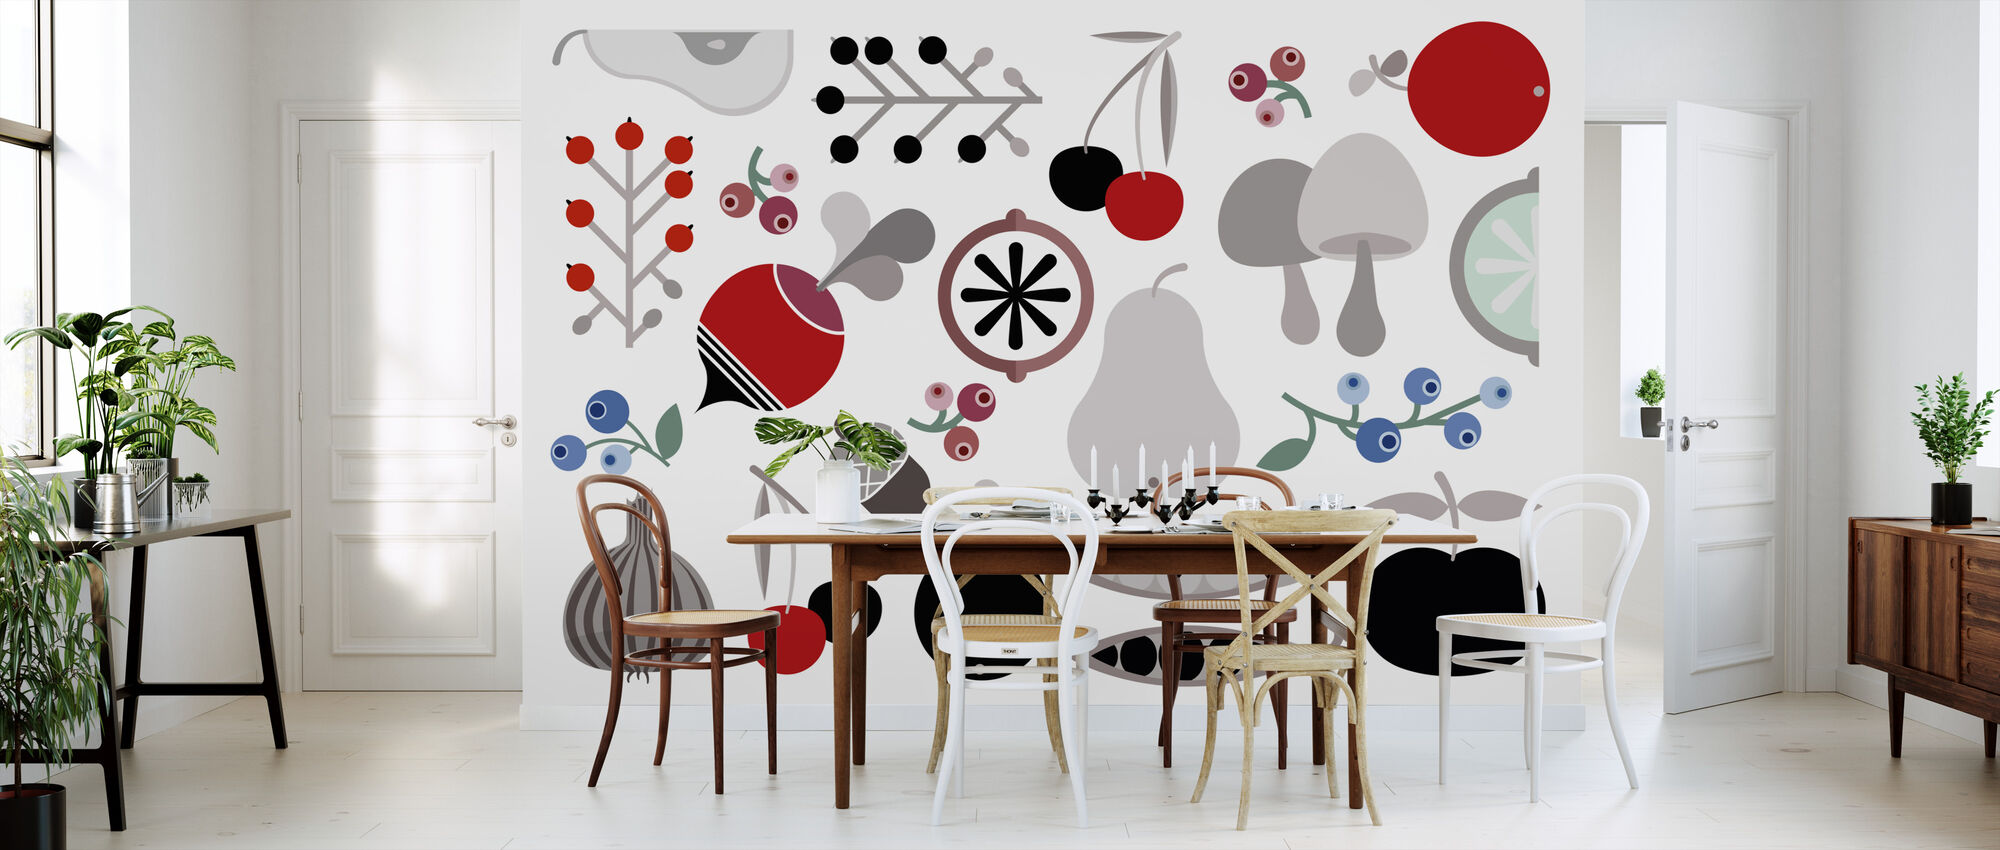 Mushroom Berries Nuts and Fruits - Wallpaper - Kitchen